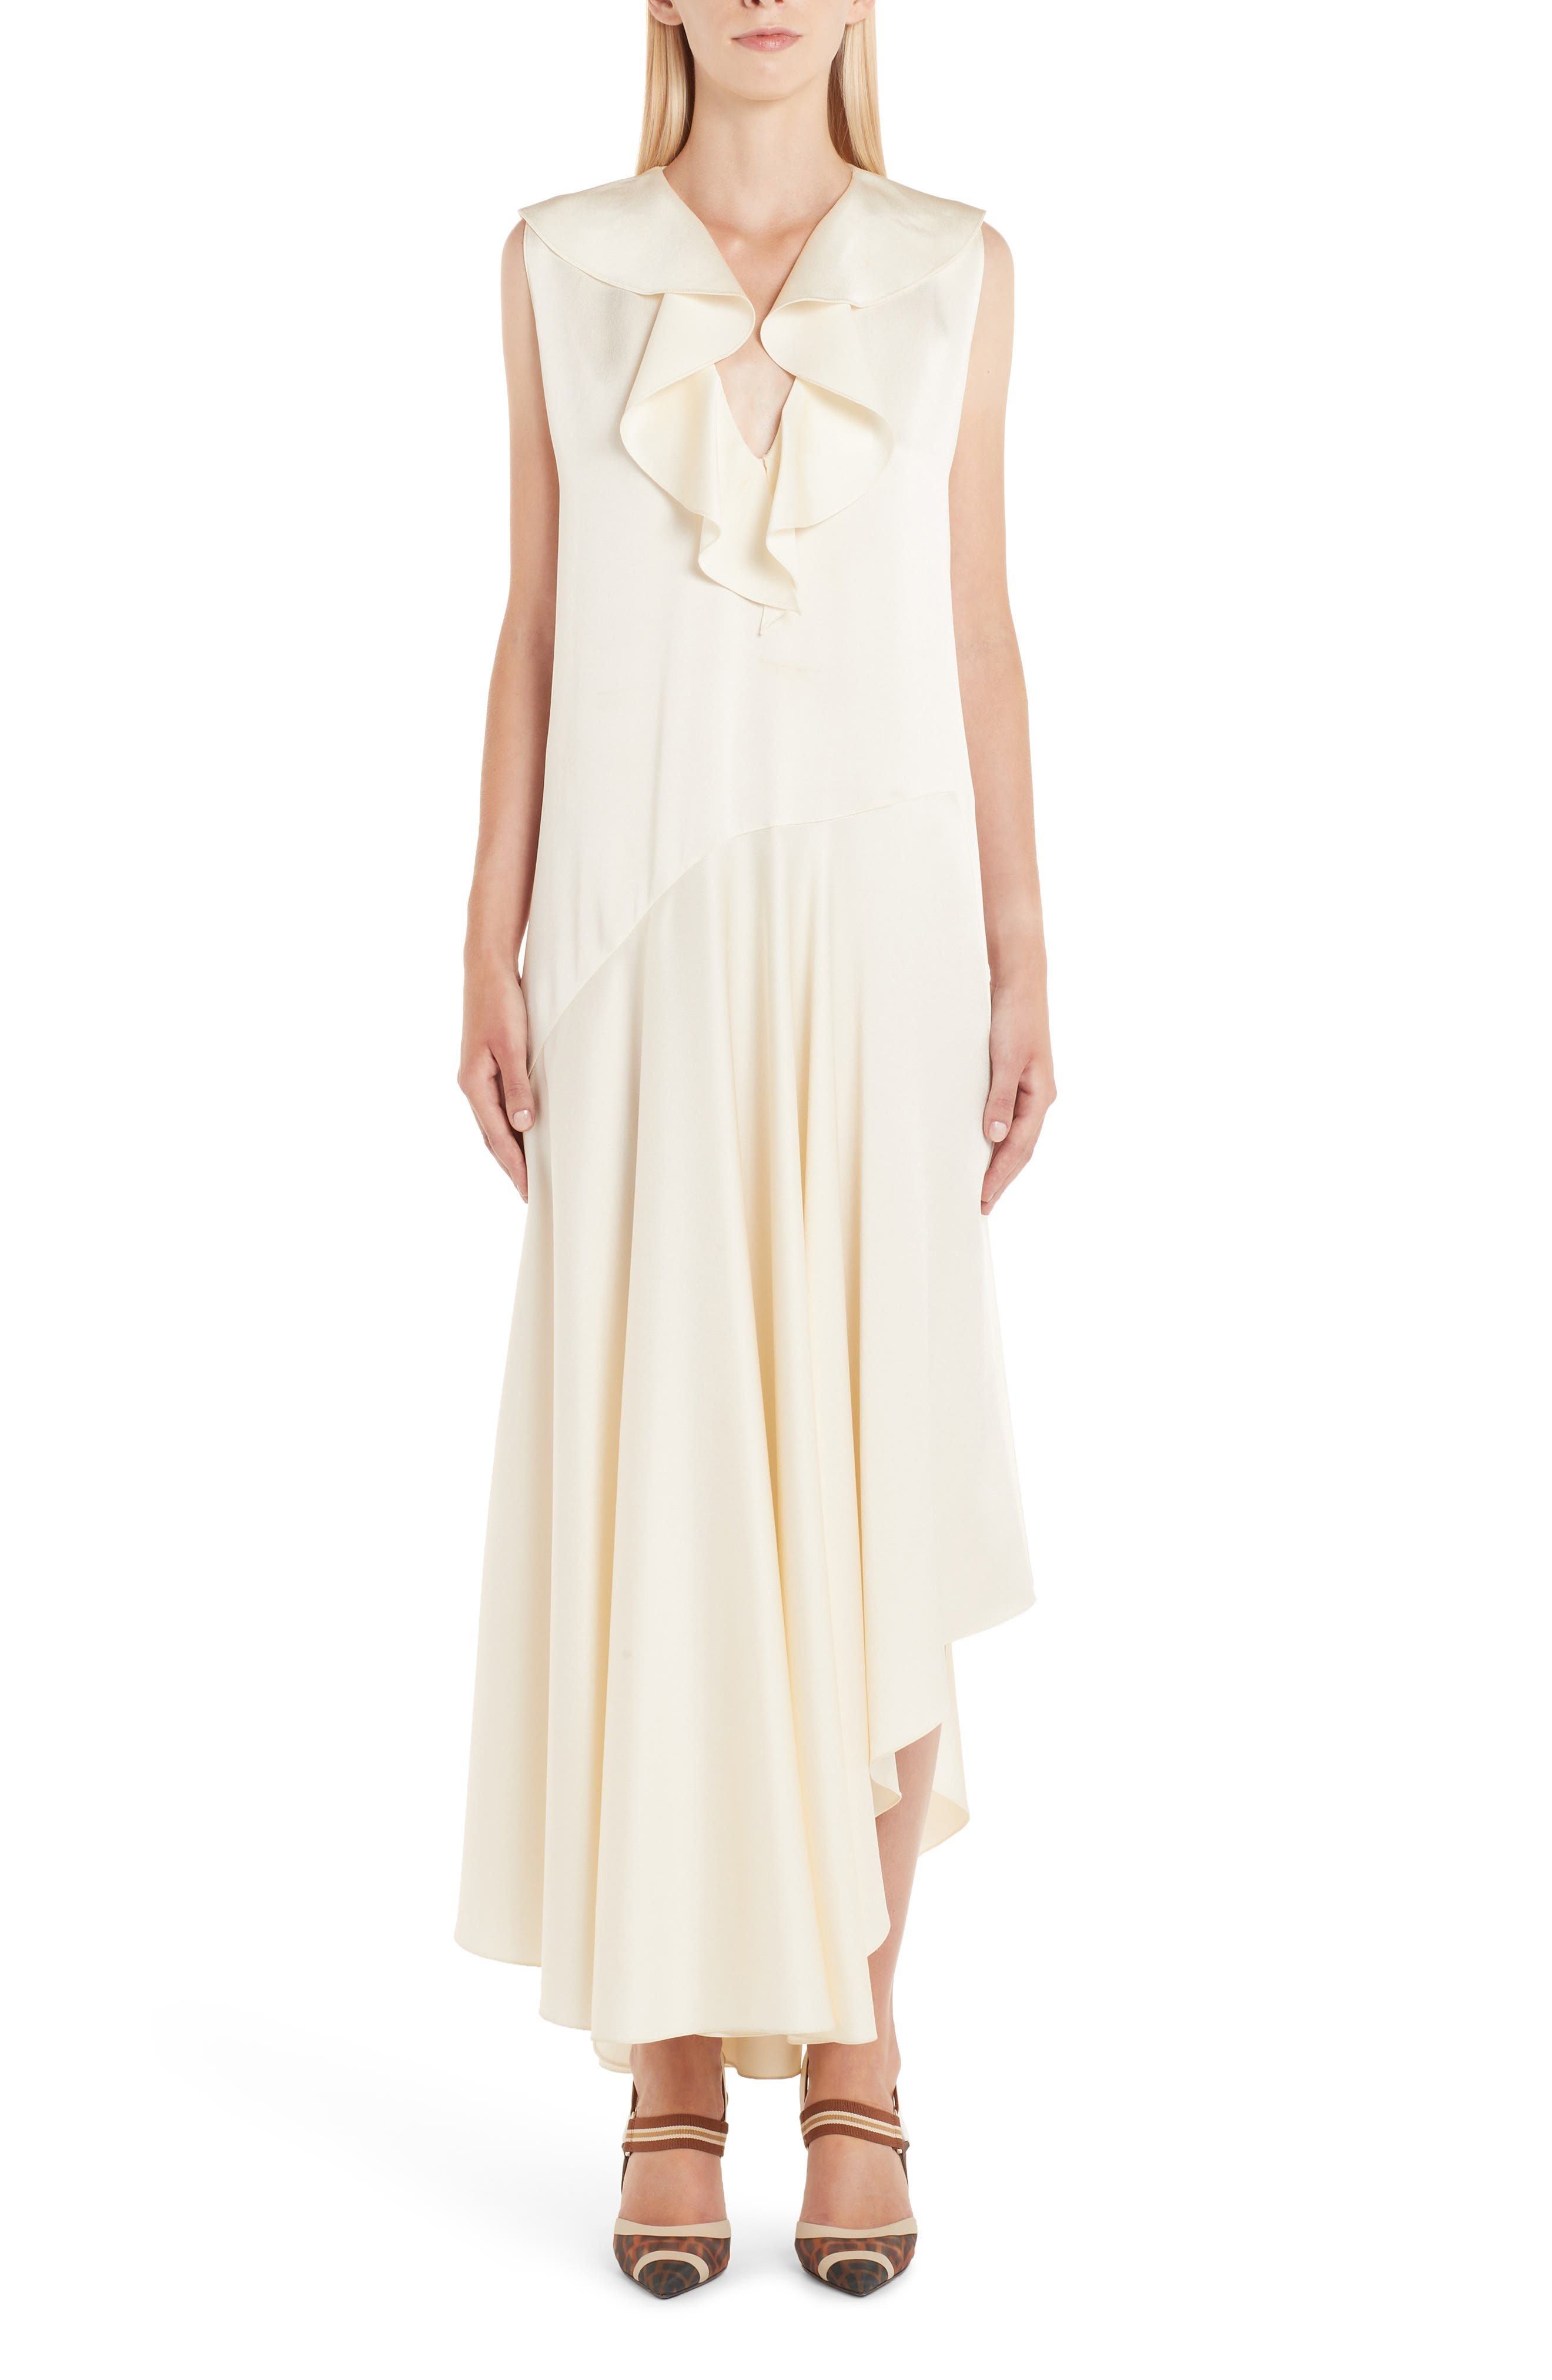 Fendi Ruffle Satin Dress, US / 40 IT - White